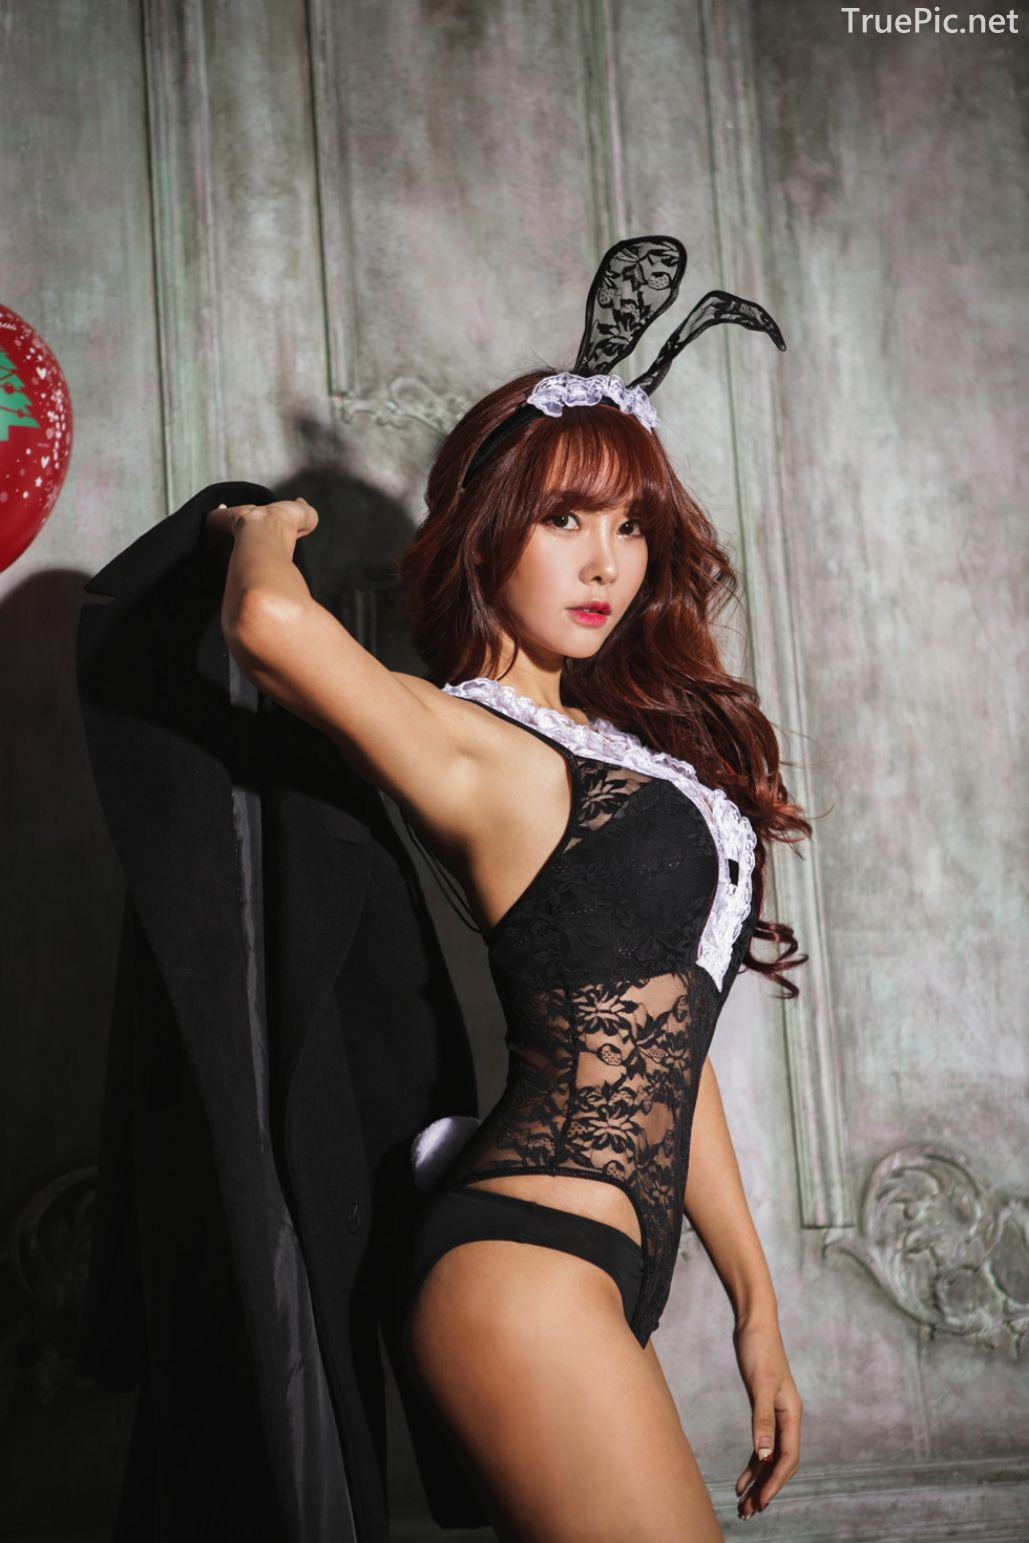 Korean-Lingerie-Fashion-Lee-Da-Hee-model-Tell-Me-What-You-Want-To-Do-TruePic.net- Picture 10